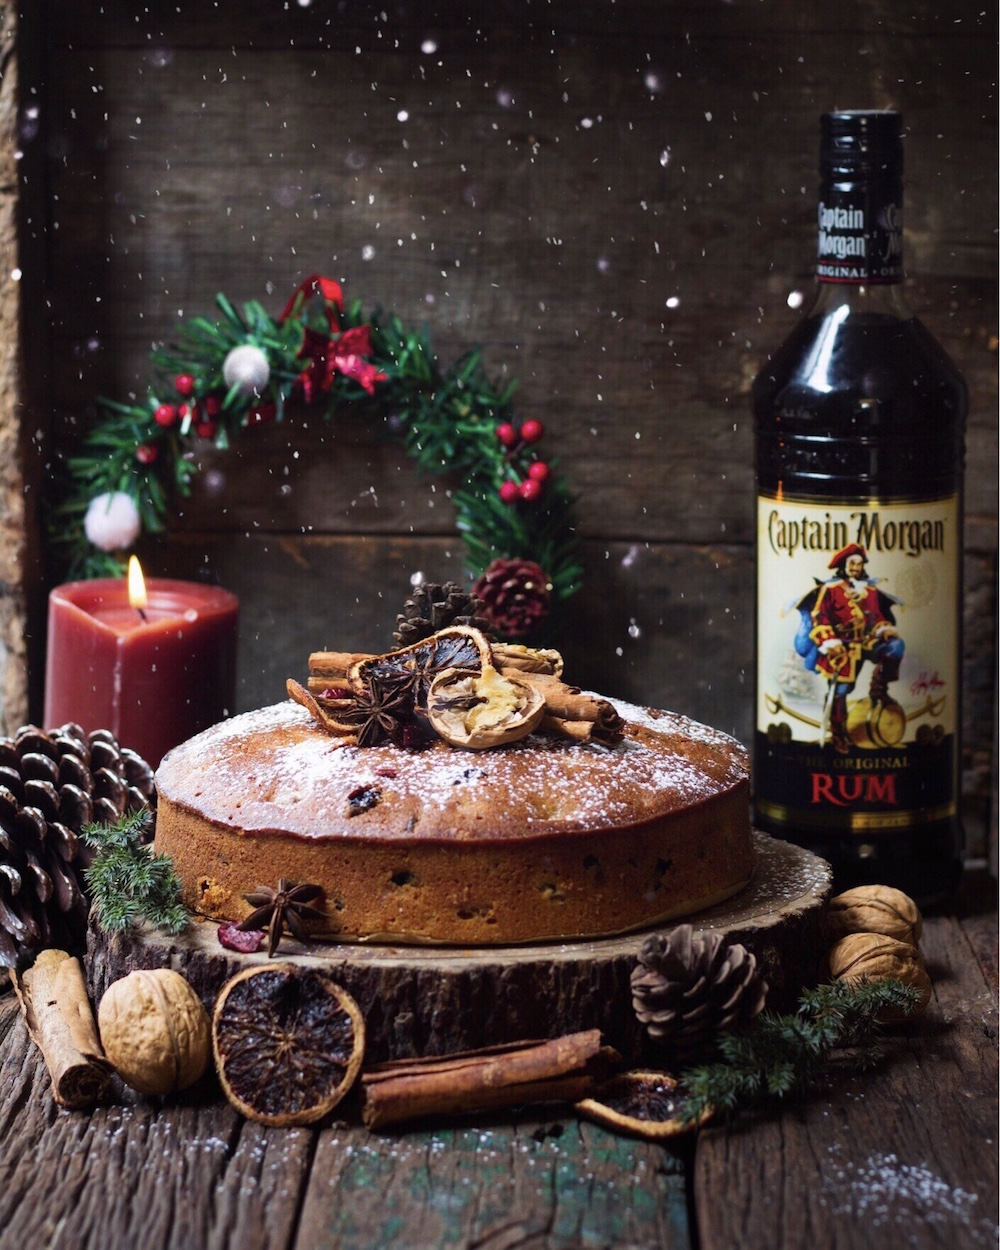 Christmas cake recipes are not too difficult to learn, so try making once?